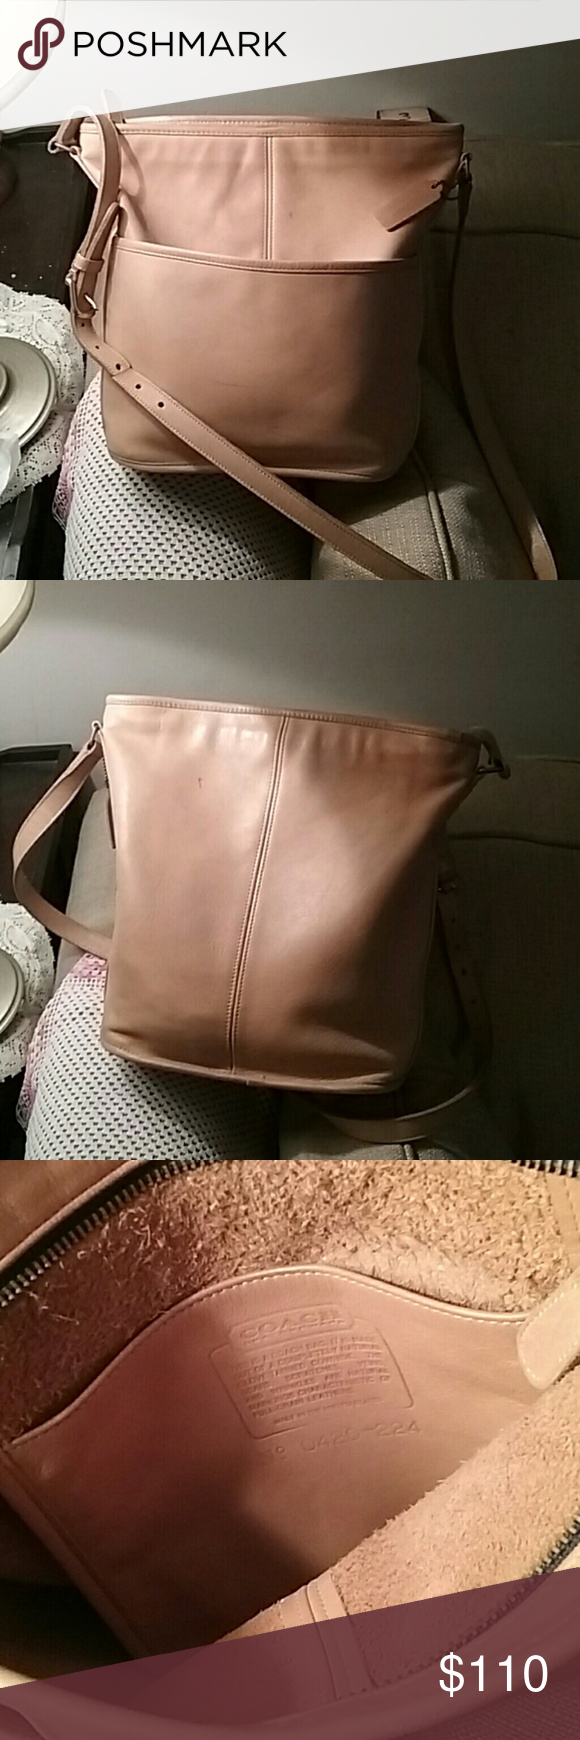 Solid Leather Coach Bucket Bag Beautiful Coach leather bag. Nice and soft. One side pocket. One small pocket inside. Strap in great condition. Not lined all genuine leather. 1 tiny spot  on the back as you can see. Very  minor flaws for a 100% leather purse. Coach Bags Shoulder Bags